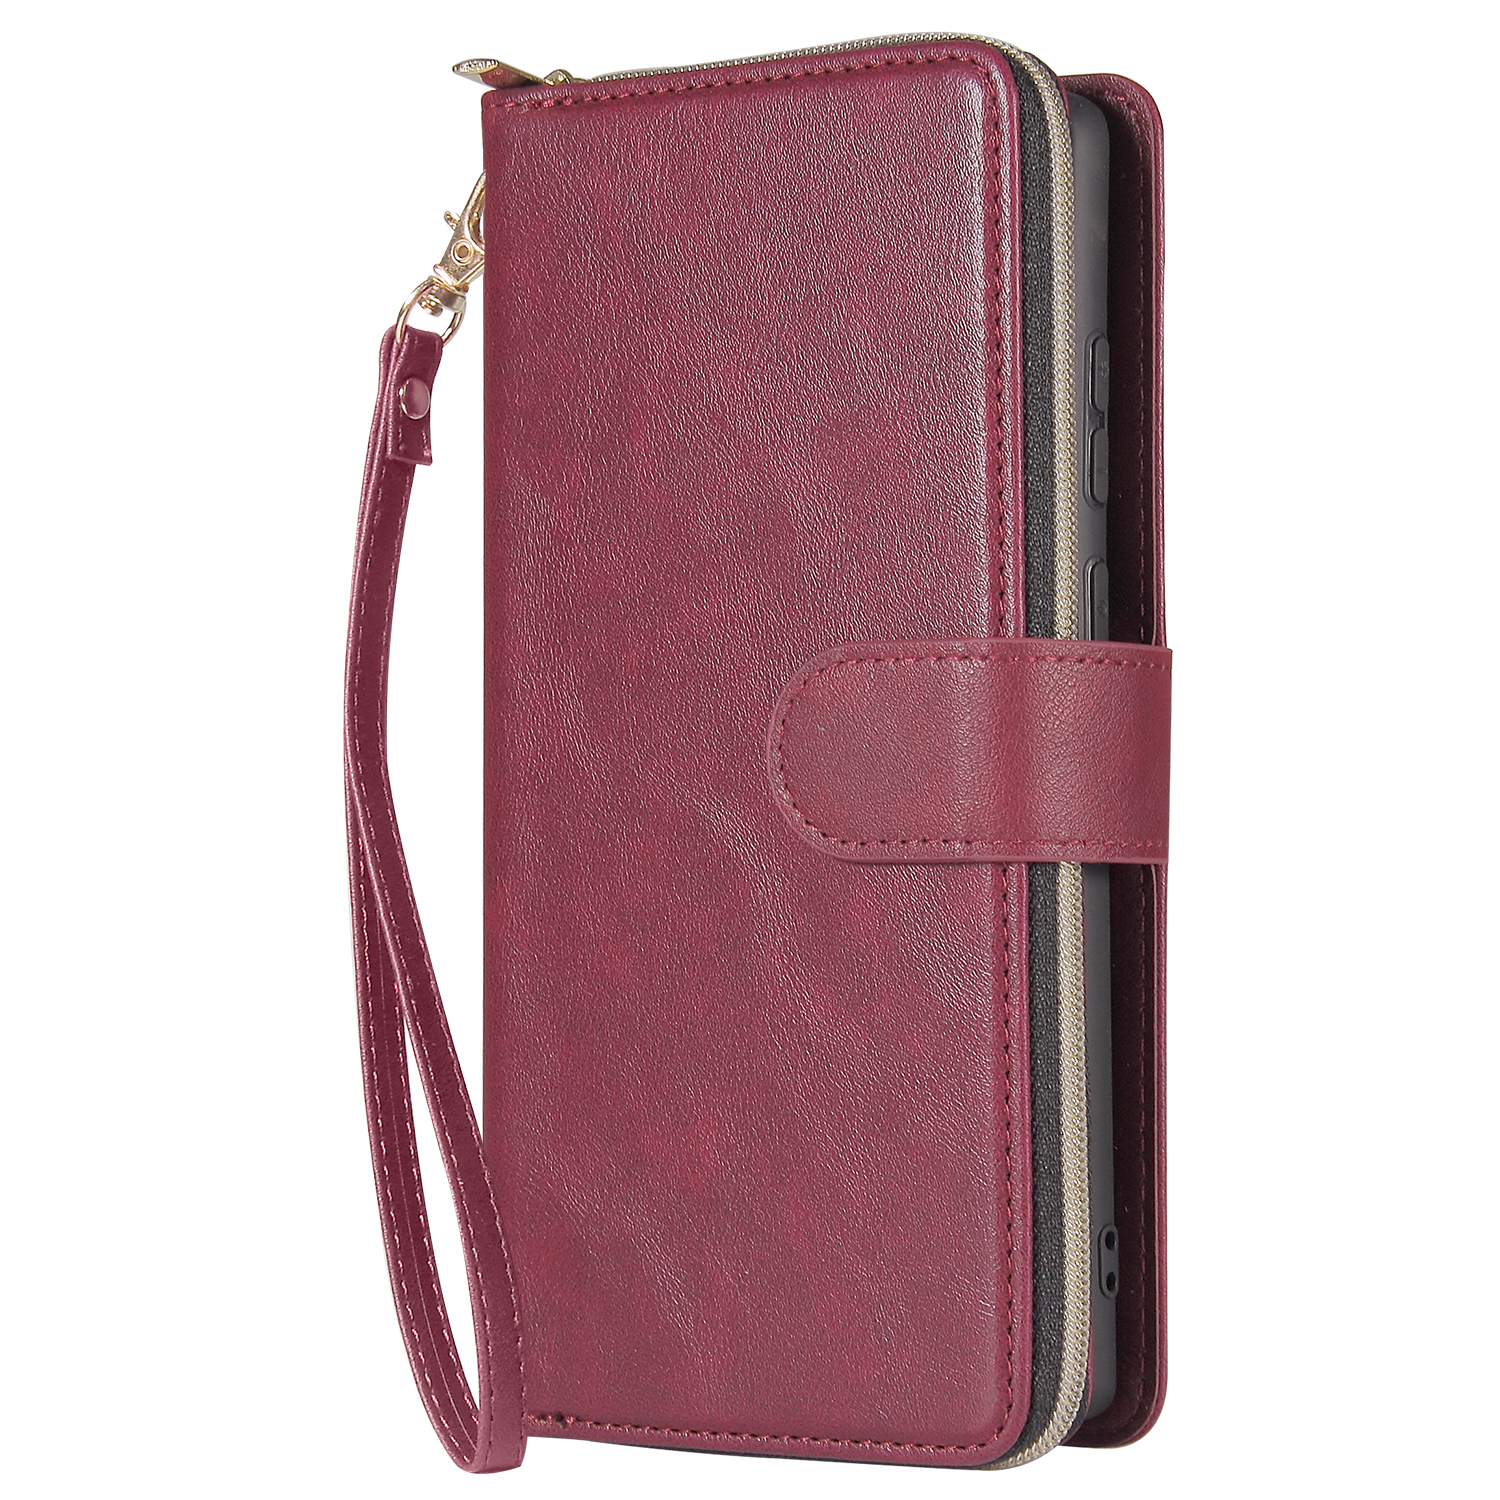 For Samsung A51 5G/A71 5G/Note 10 pro Pu Leather  Mobile Phone Cover Zipper Card Bag + Wrist Strap Red wine